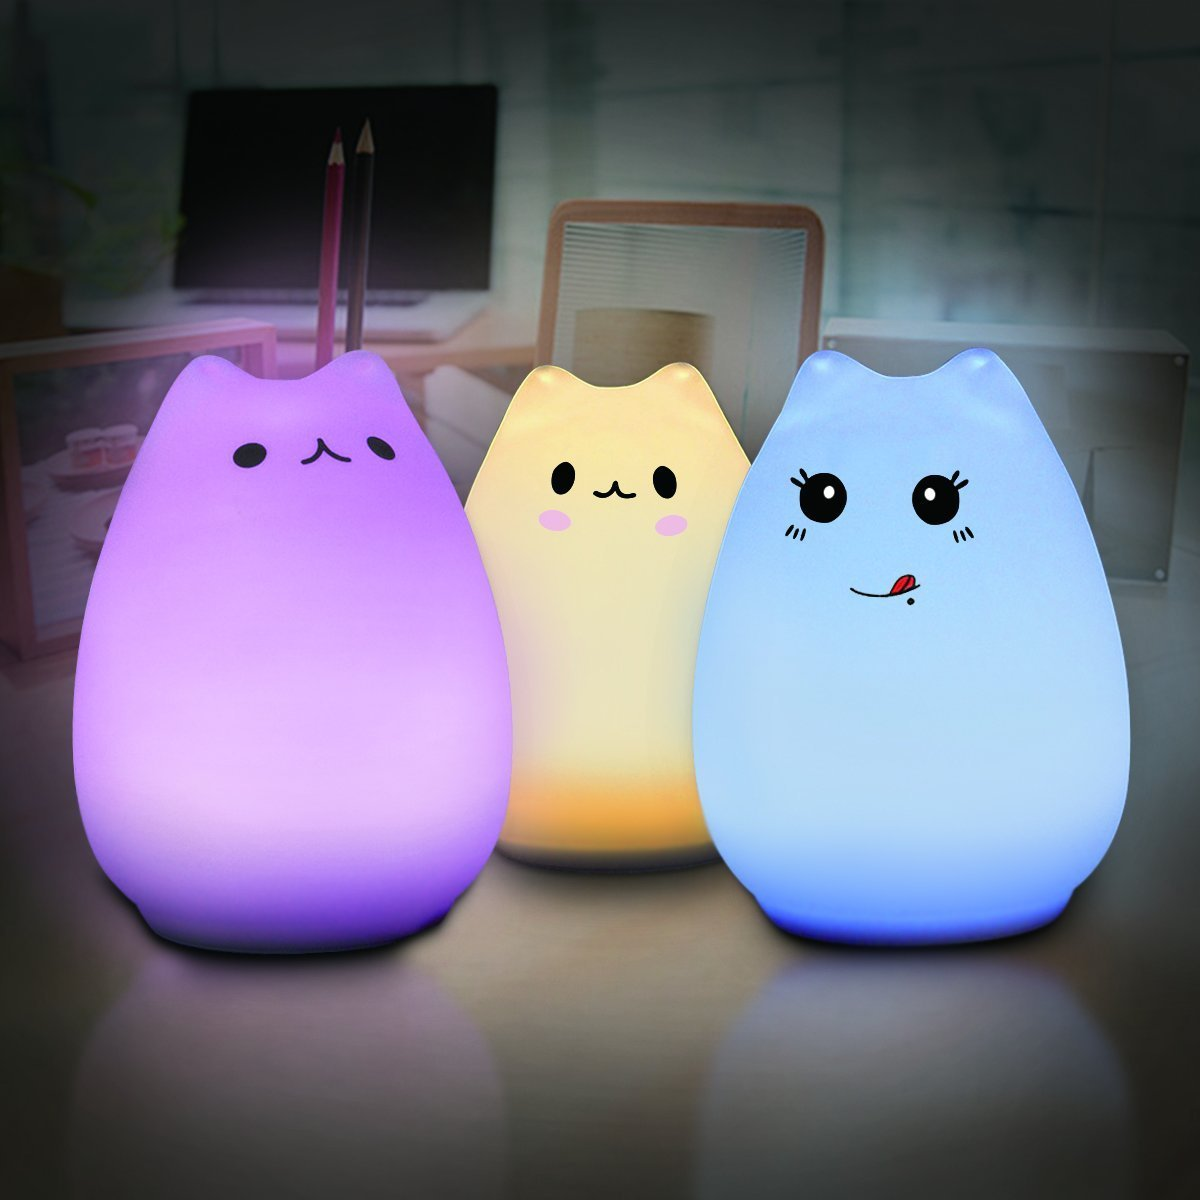 Yiping Brand New and Children Night Light,Multi-Color Cat Lamp with Remote- Cute Kitty Cartoon Animal LED Portable Silicone Night Light - 12 Single Colors & 7-Color Breathing Modes - USB